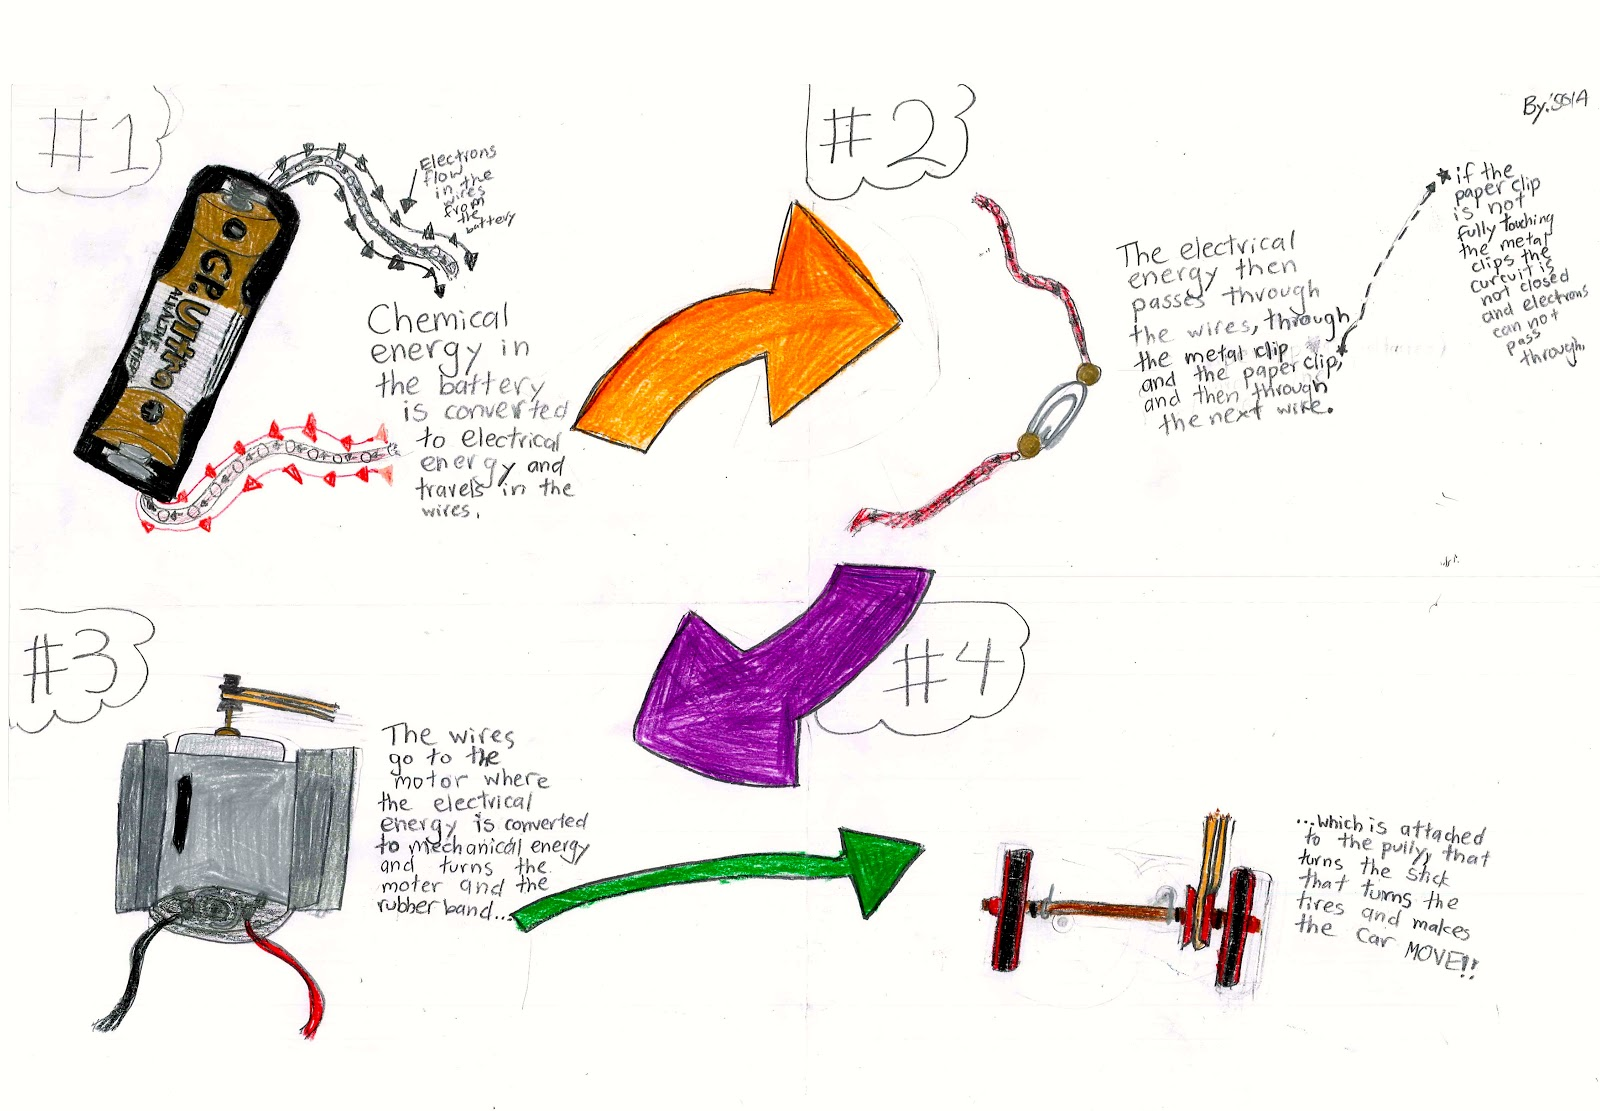 how solar power works diagram herbivore carnivore omnivore venn to work energy pdf postscatk2 over blog